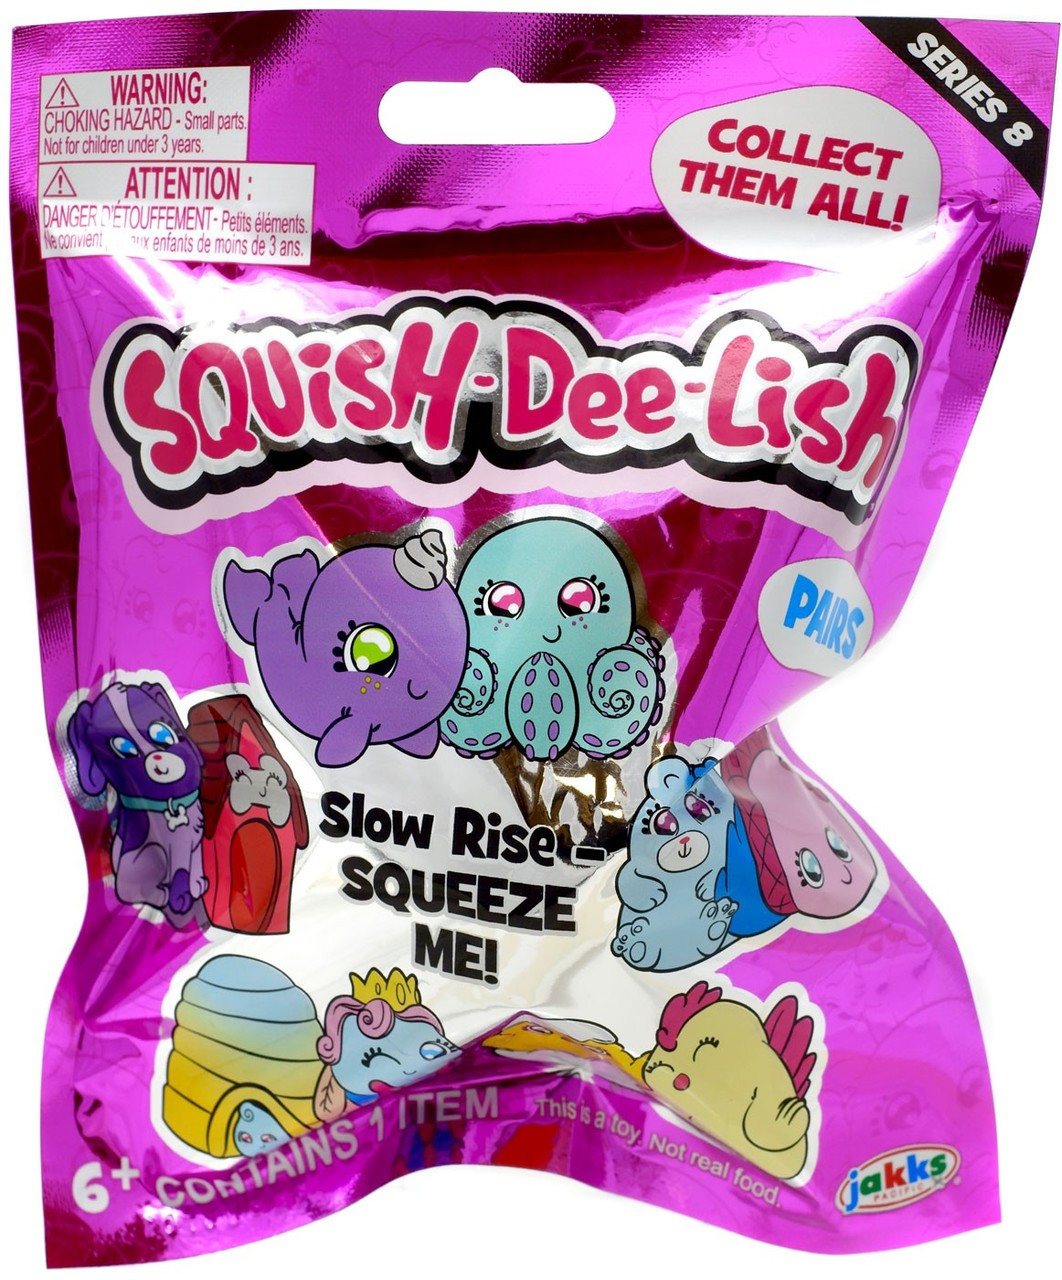 Squish-Dee-Lish Series 2 Slow Rise-Squeeze Me Toy 1 pack Blind bag Christmas